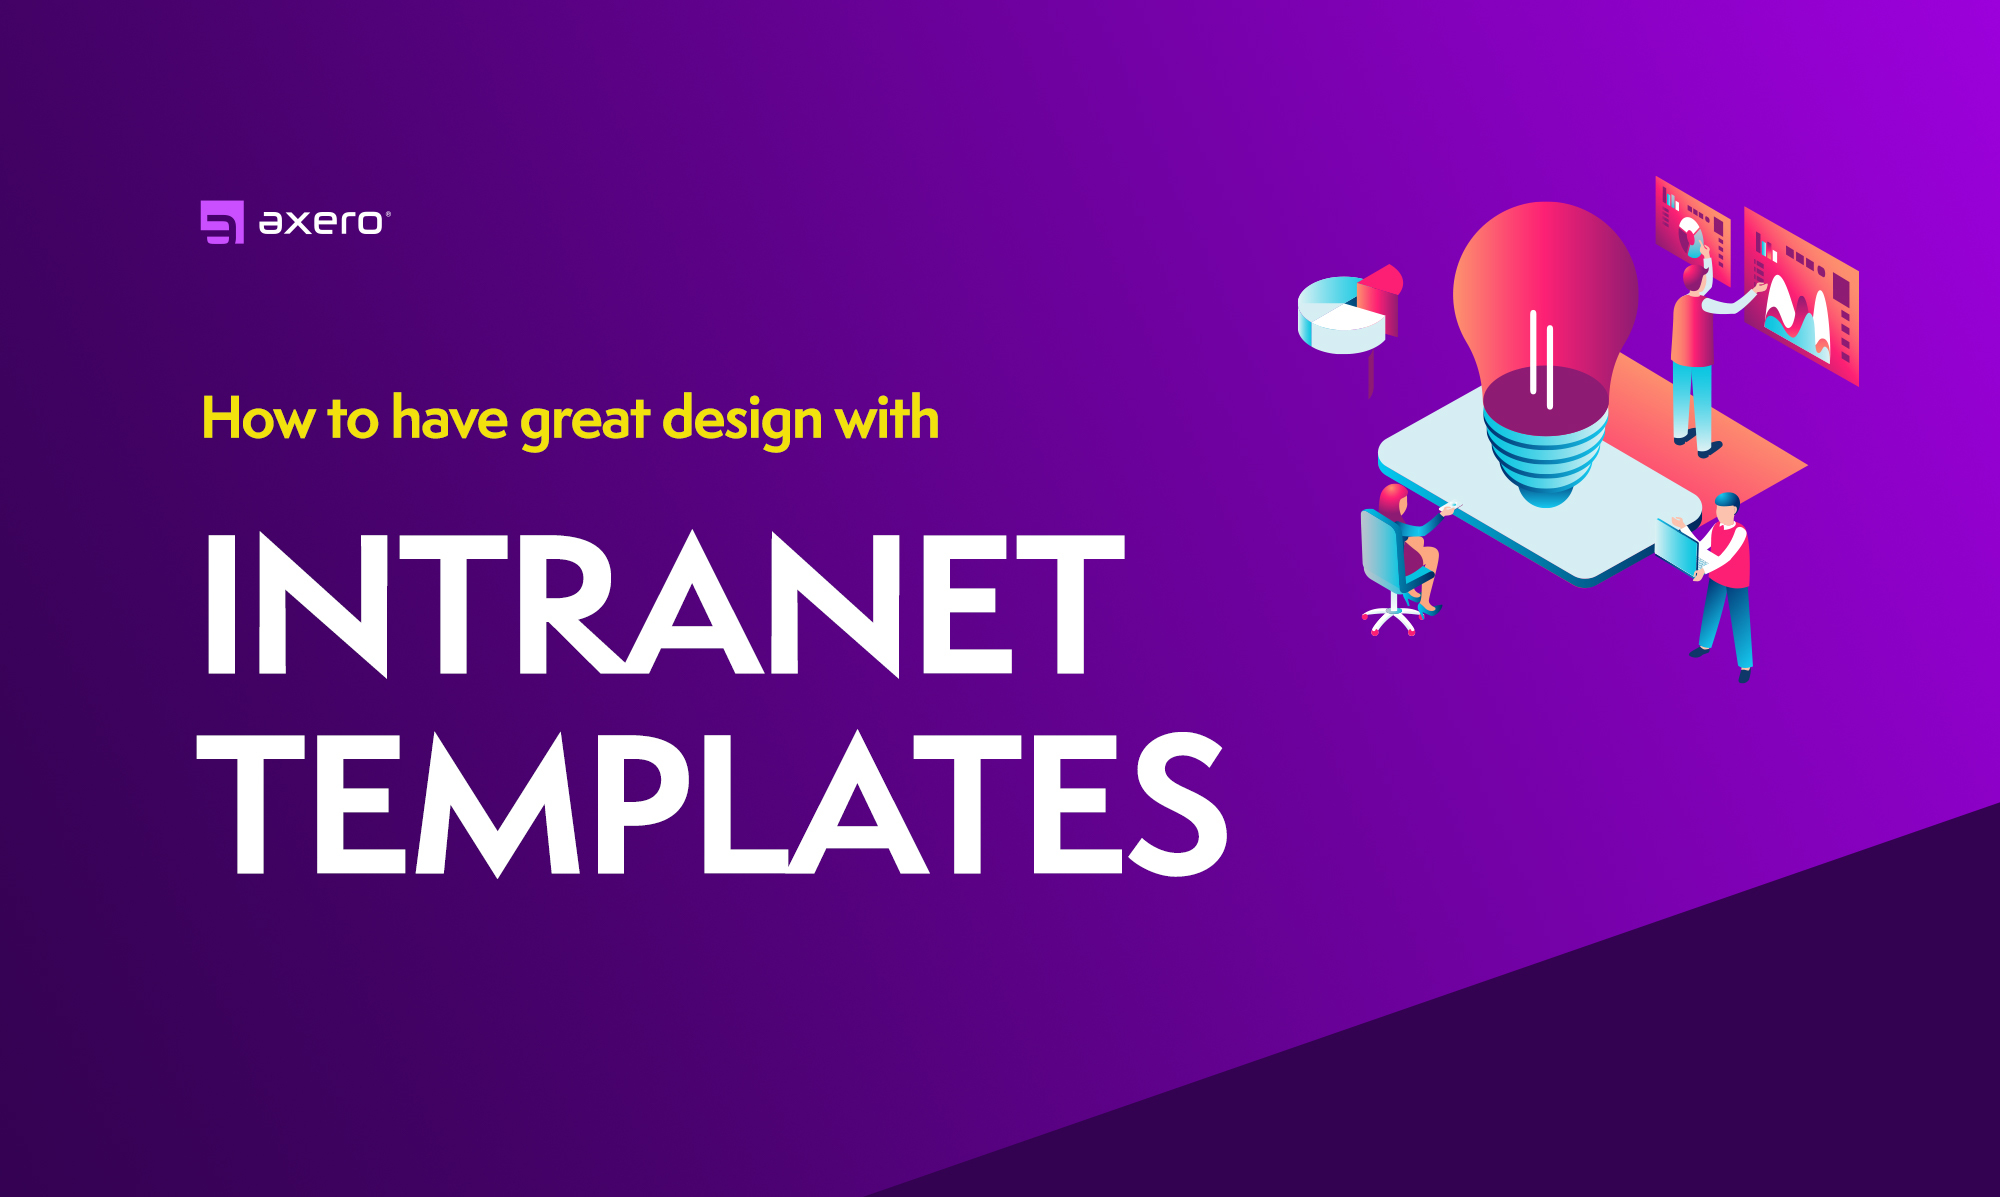 Intranet Templates – Effective Designs to Enhance Your Intranet